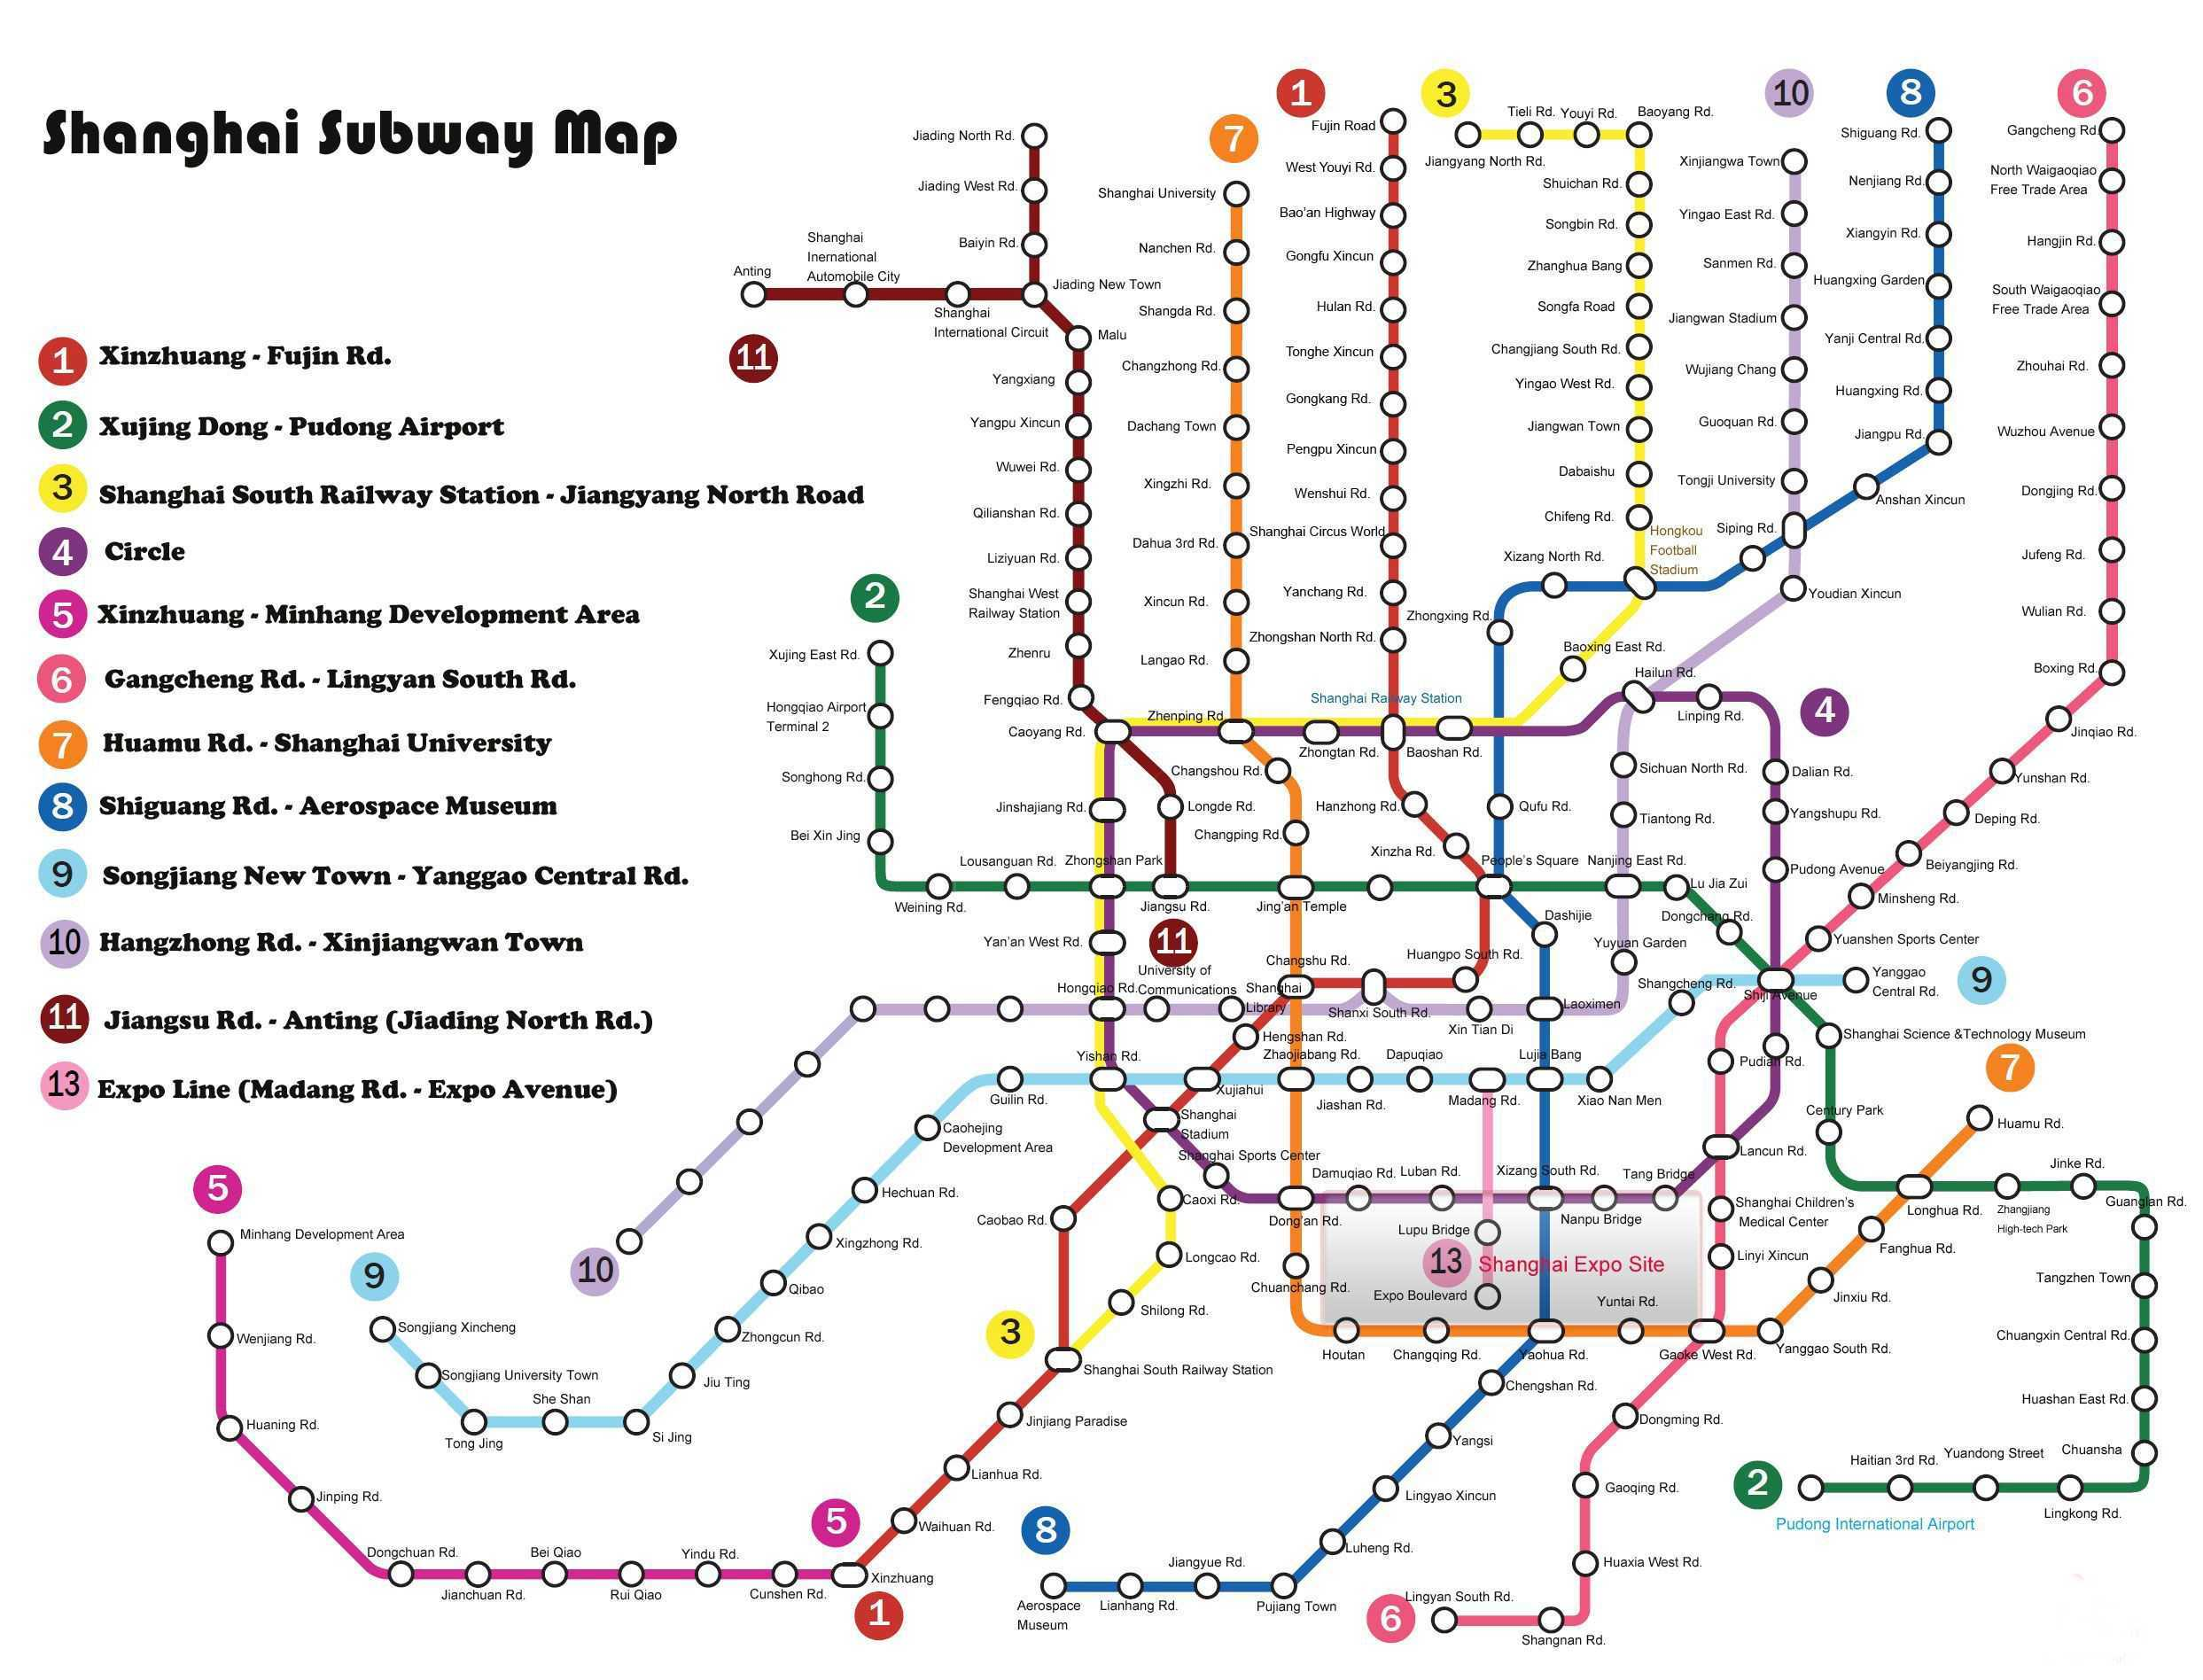 Subway Map Of Beijing.China Subway Maps Beijing Subway Map Shanghai Subway Map